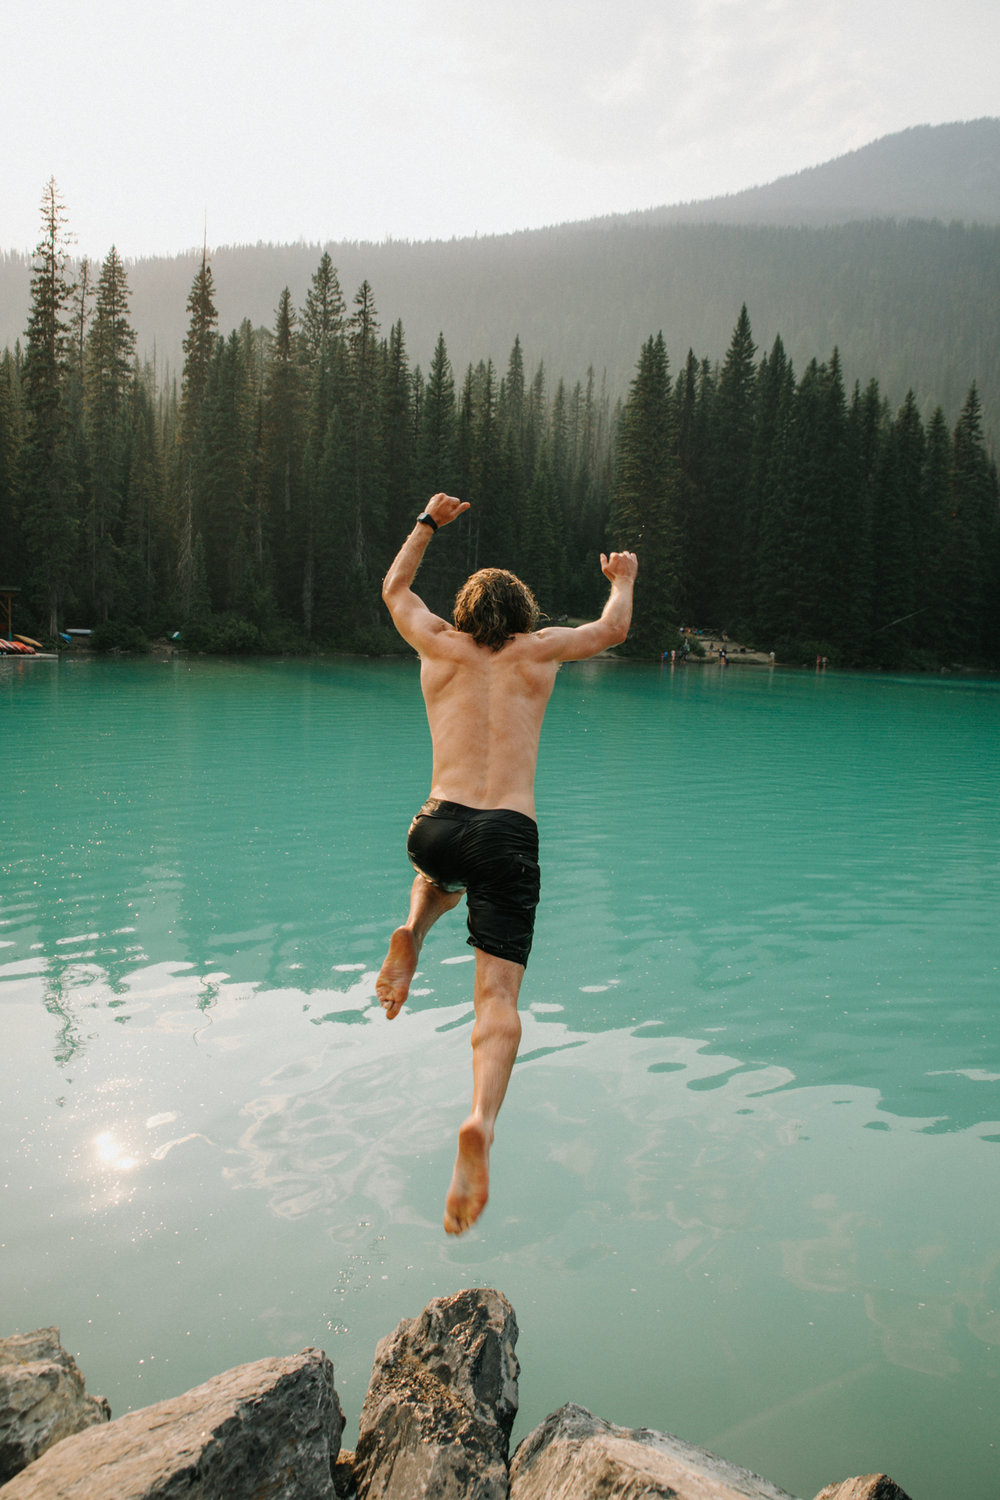 Emerald Lake. Crazy boy just jumps right in!